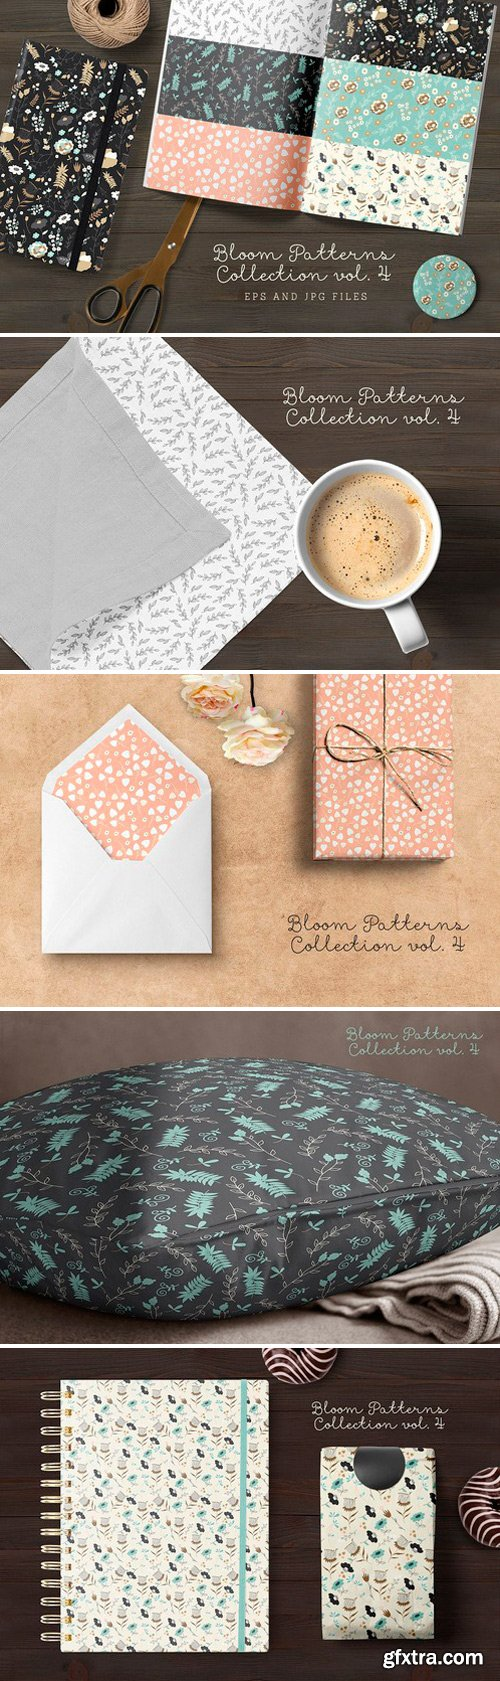 CM - Bloom Patterns Collection vol.4 999830